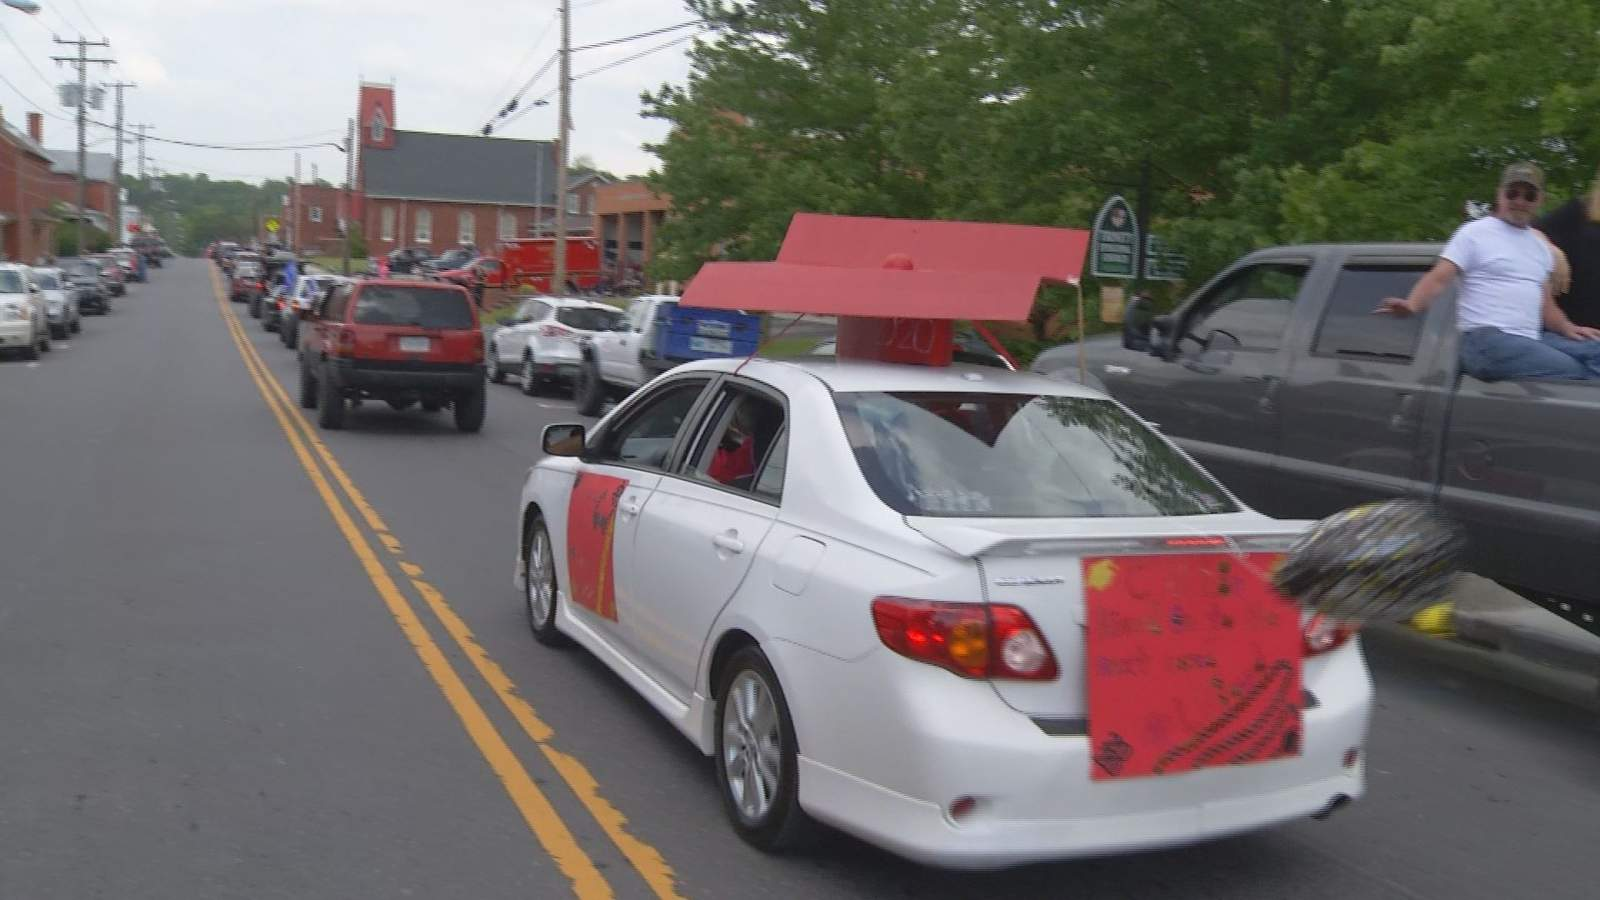 Buchanan Va Christmas Parade 2020 Botetourt County's Class of 2020 honored with parades for high